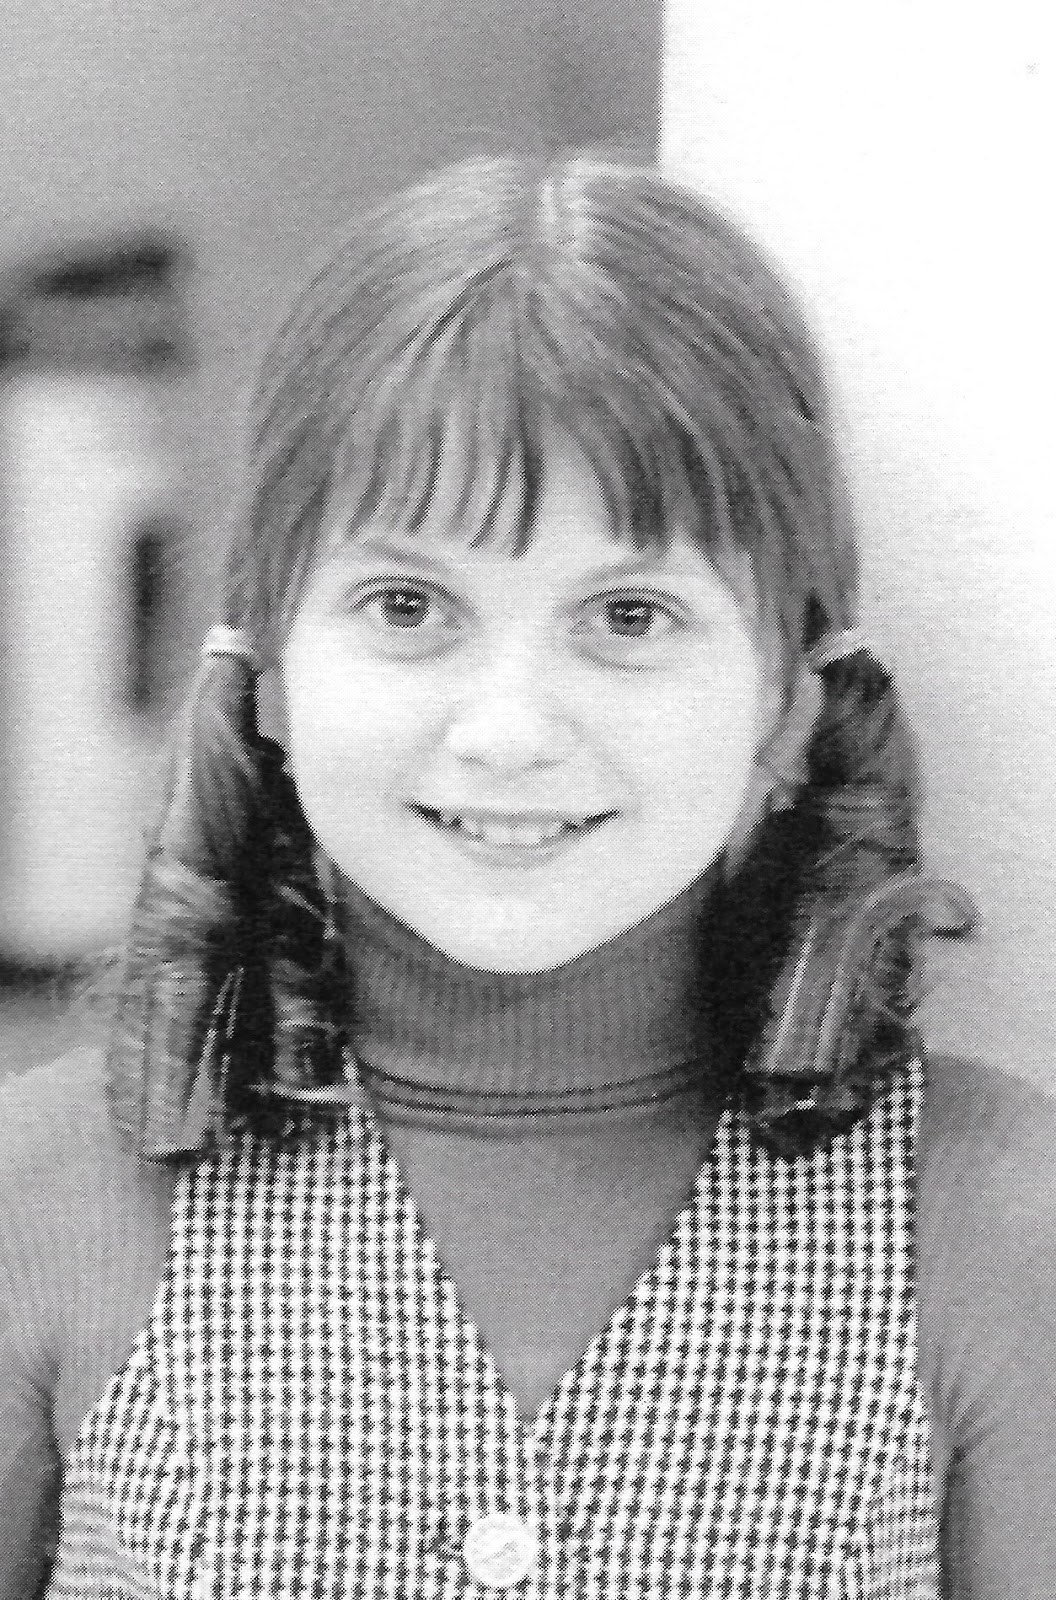 denise nickerson - photo #8